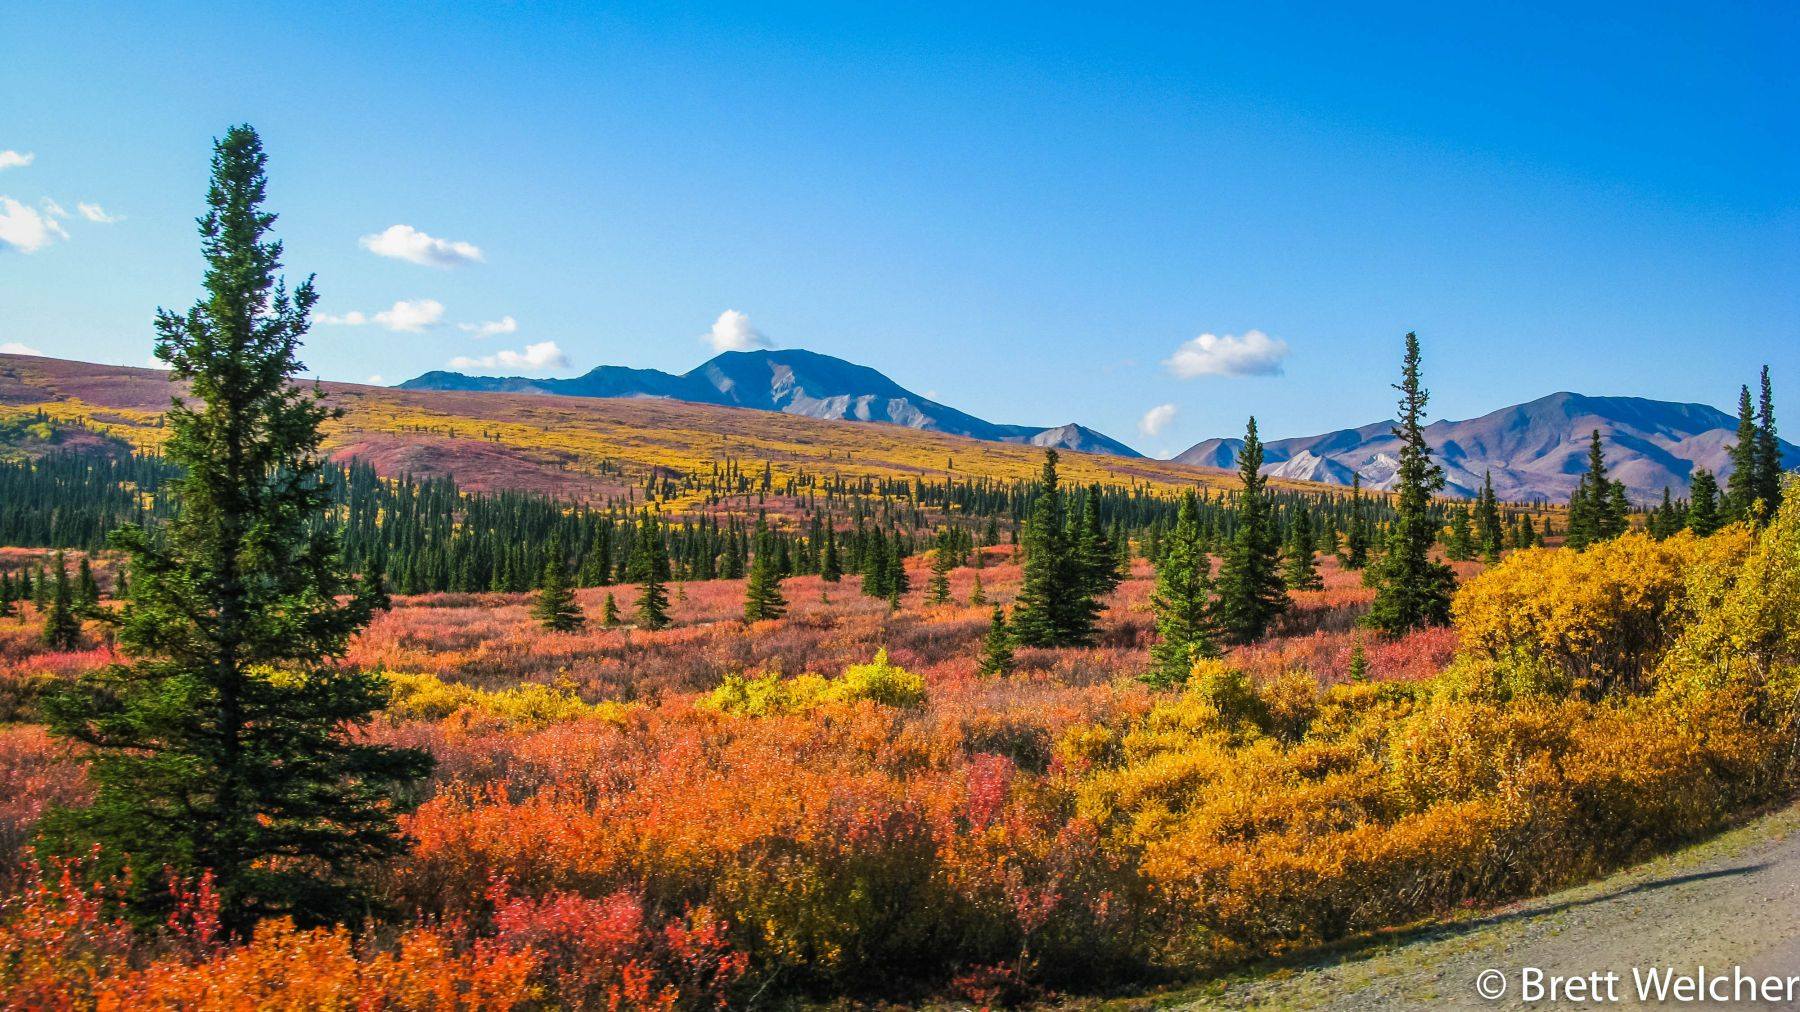 Denali State Park erupts in bright shades of red, orange and yellow during the fall.